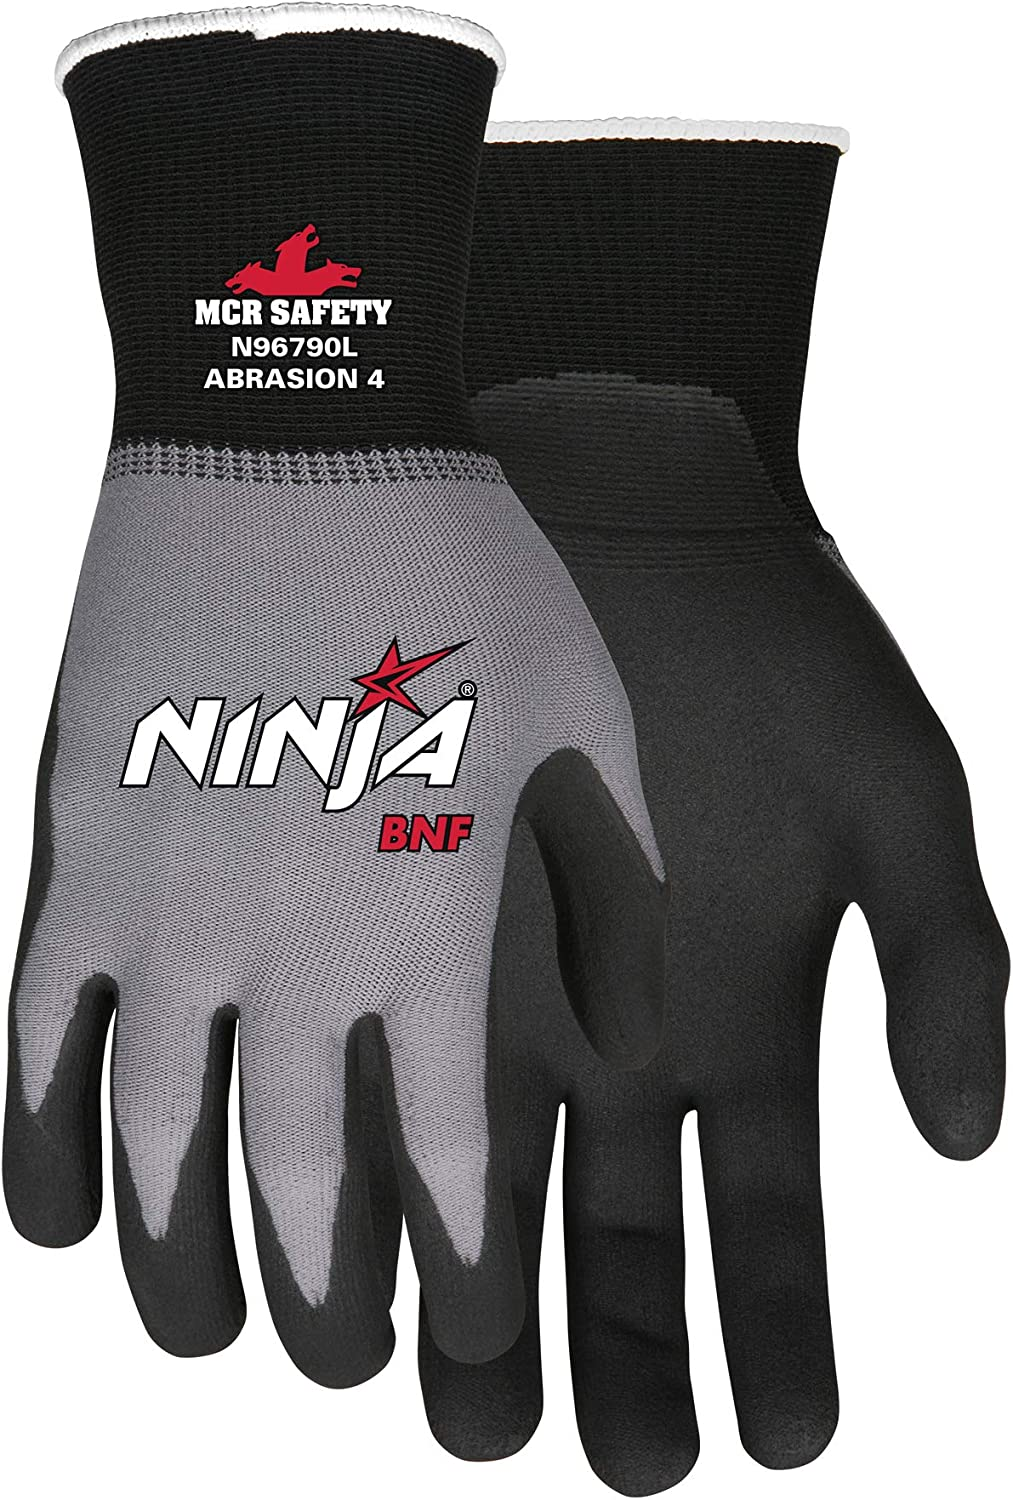 MCR Safety N96790M Ninja BNF Nitrile Gloves, ANSI Puncture 2, Abrasion 4, 15 Gauge Nylon/Spandex Shell with BNF Palm & Fingertips, 1-Pair, Medium